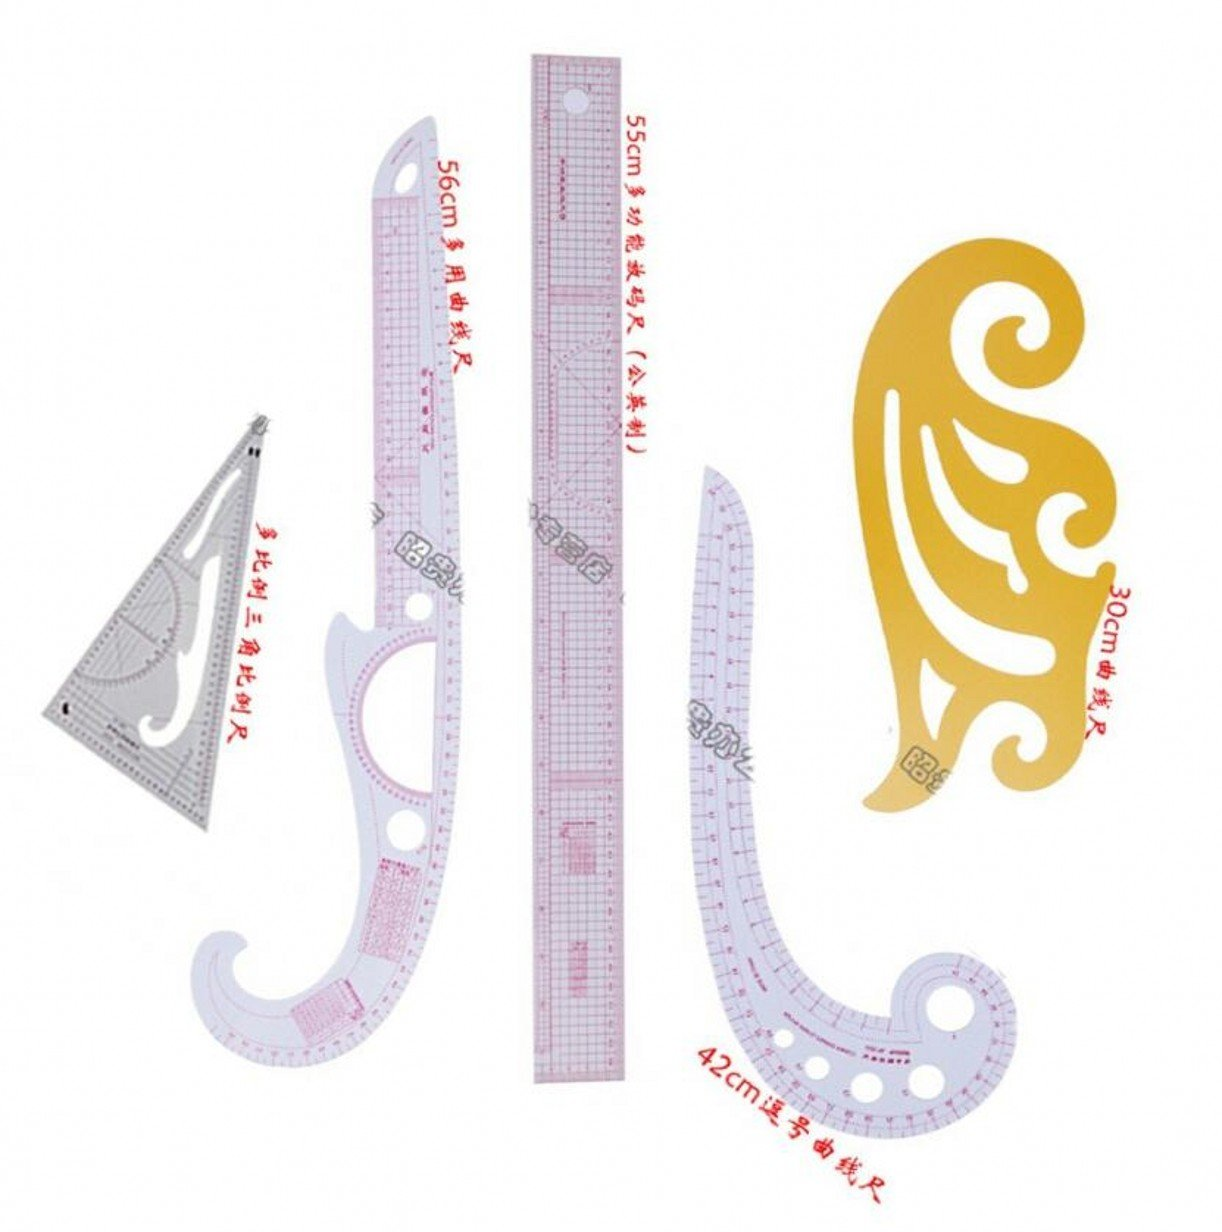 CHENGYIDA Practical 5 Styling Ruler French Curve Set French Curve,Comma Shape Curve Line Pattern Ruler ,METRIC CURVED RULER by CHENGYIDA